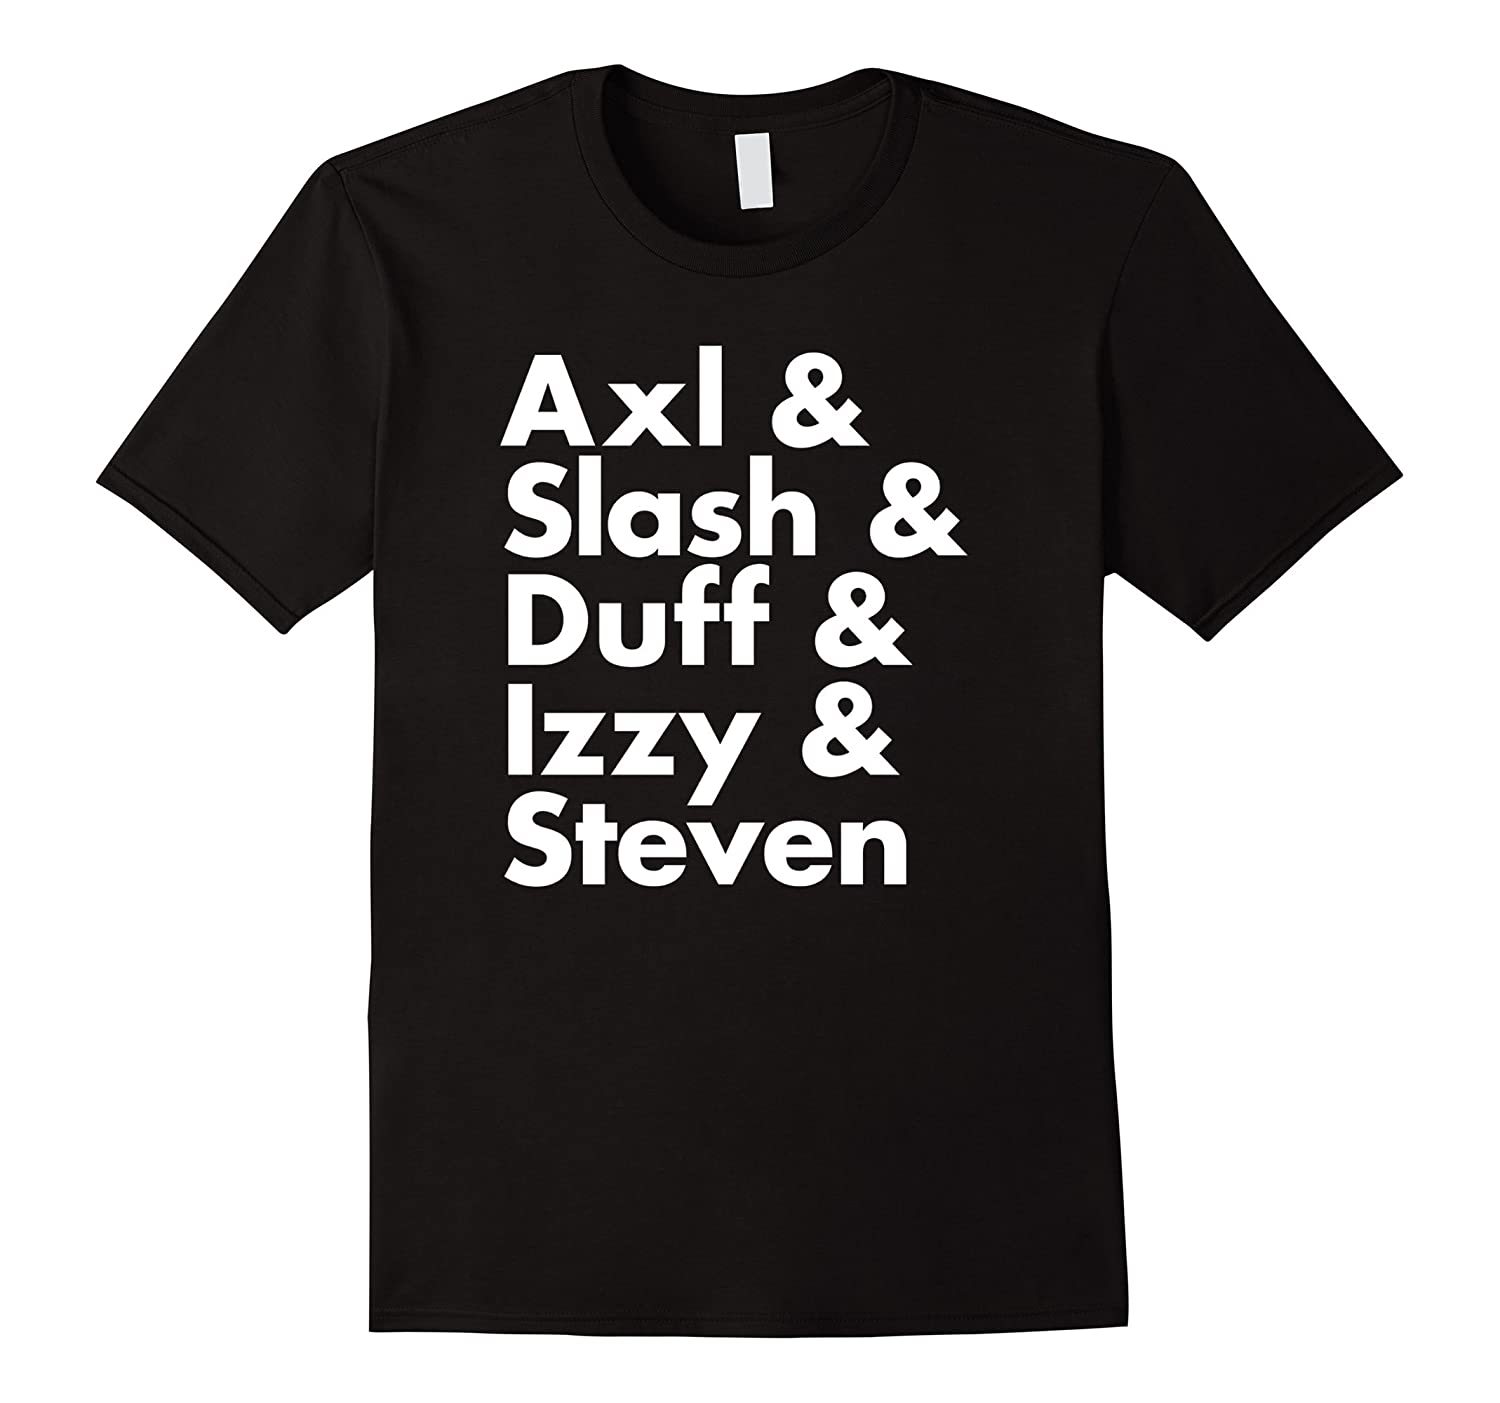 Axl Slash Duff Izzy Steven Hard Rock Band Music T-Shirt